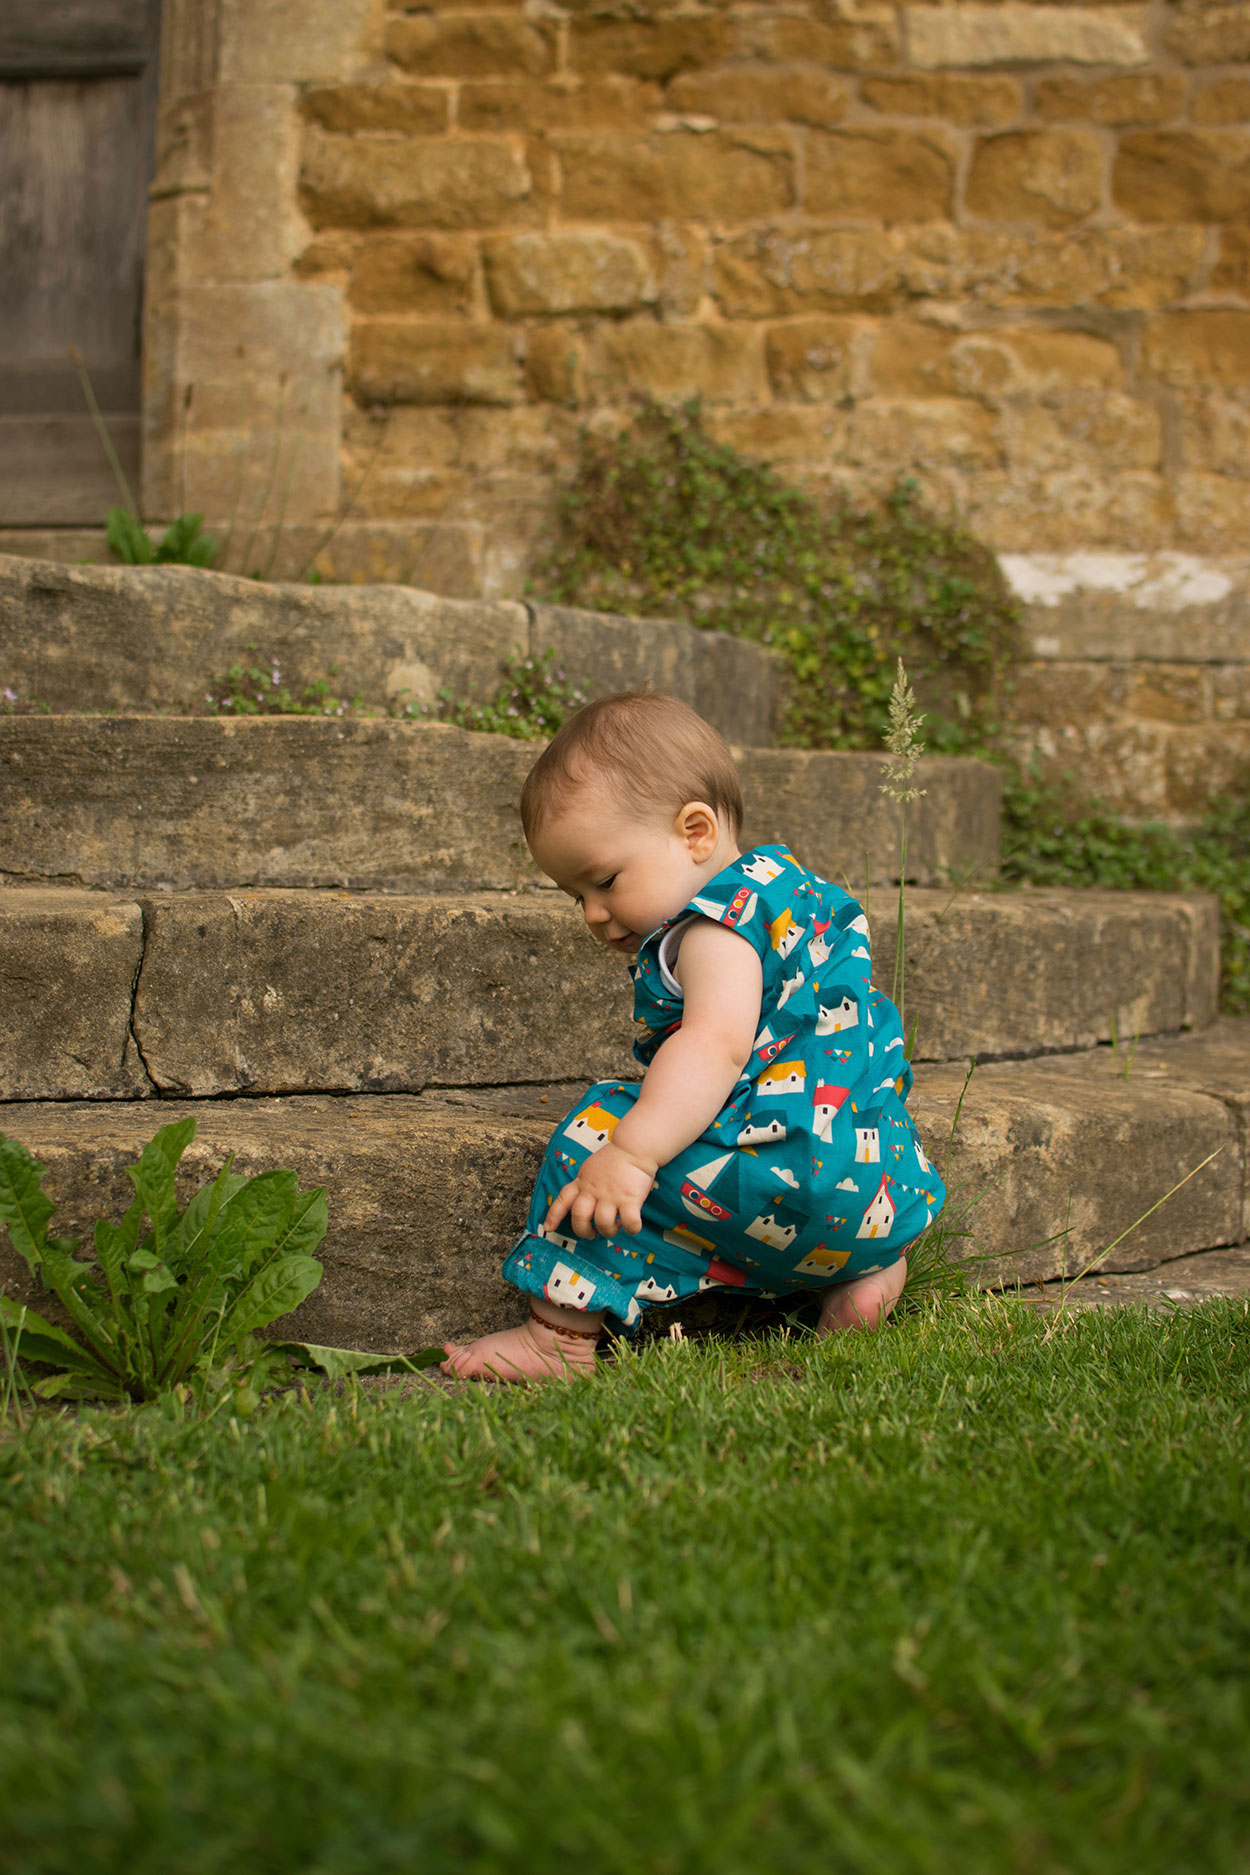 Baby Jesse Blue at 11 months old - Baby boy wearing Little Green Radicals sail away play away romper suit at Chastleton House National Trust gardens